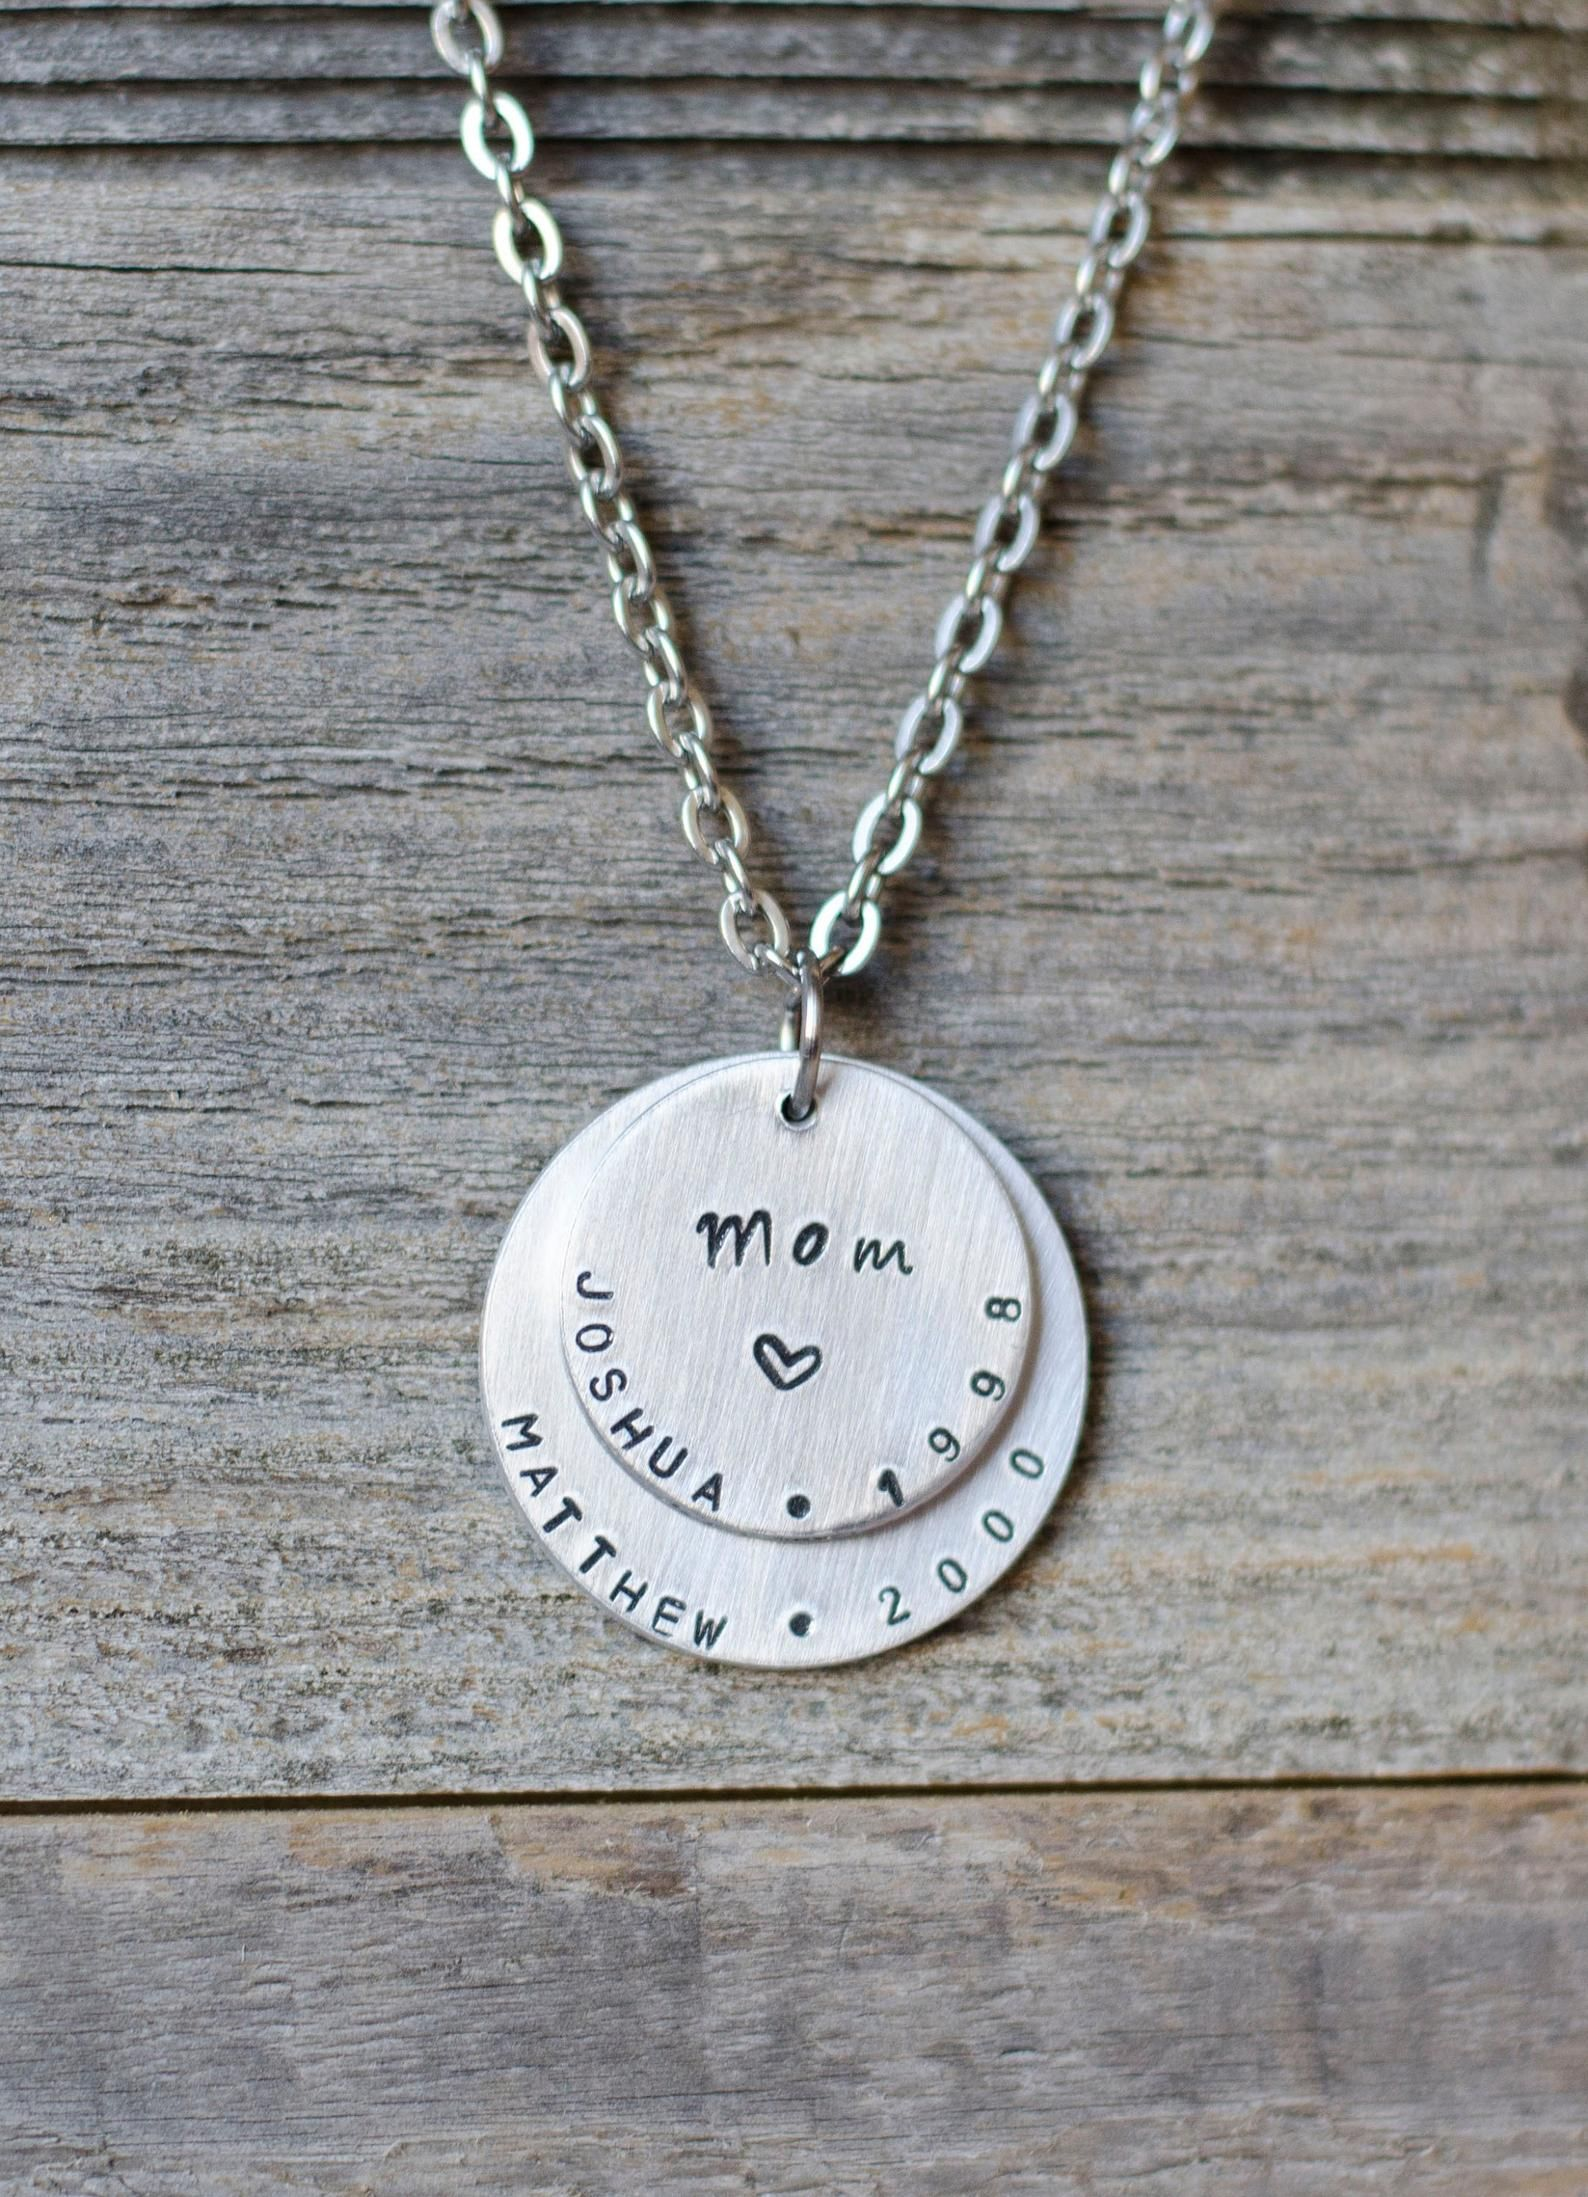 55a6db5da85e4 Personalized Mom Necklace with Kids Names, Custom Jewelry for Mom ...